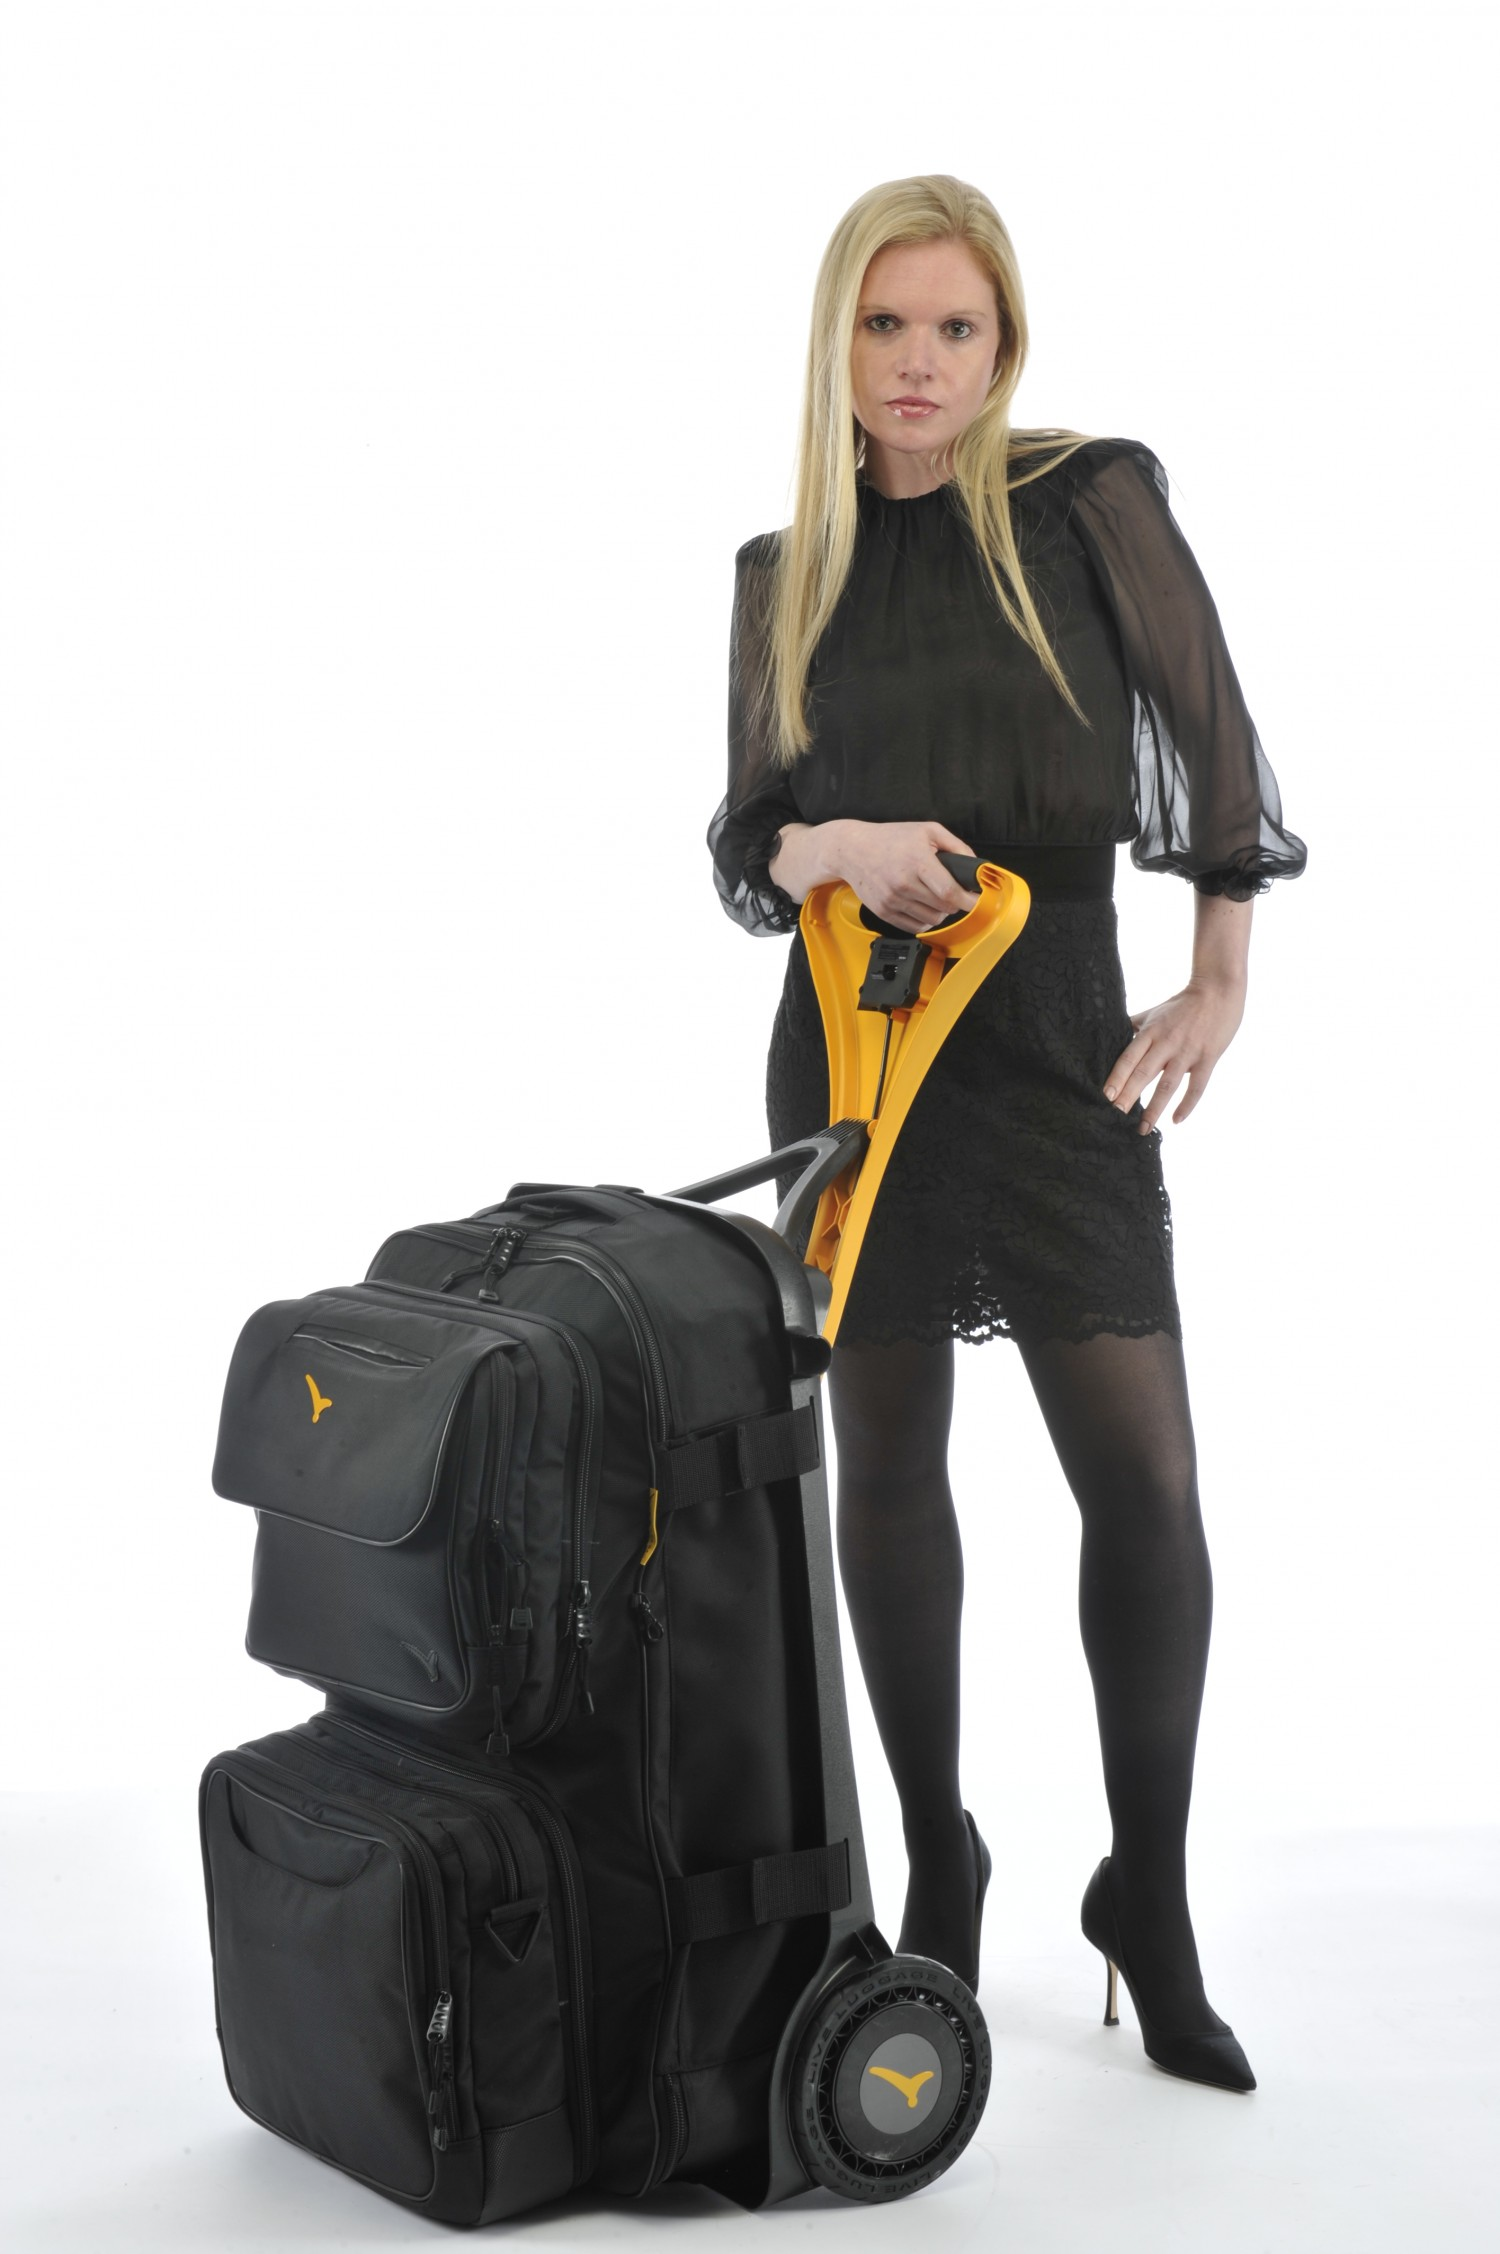 Live Luggage Hybrid AG Bag